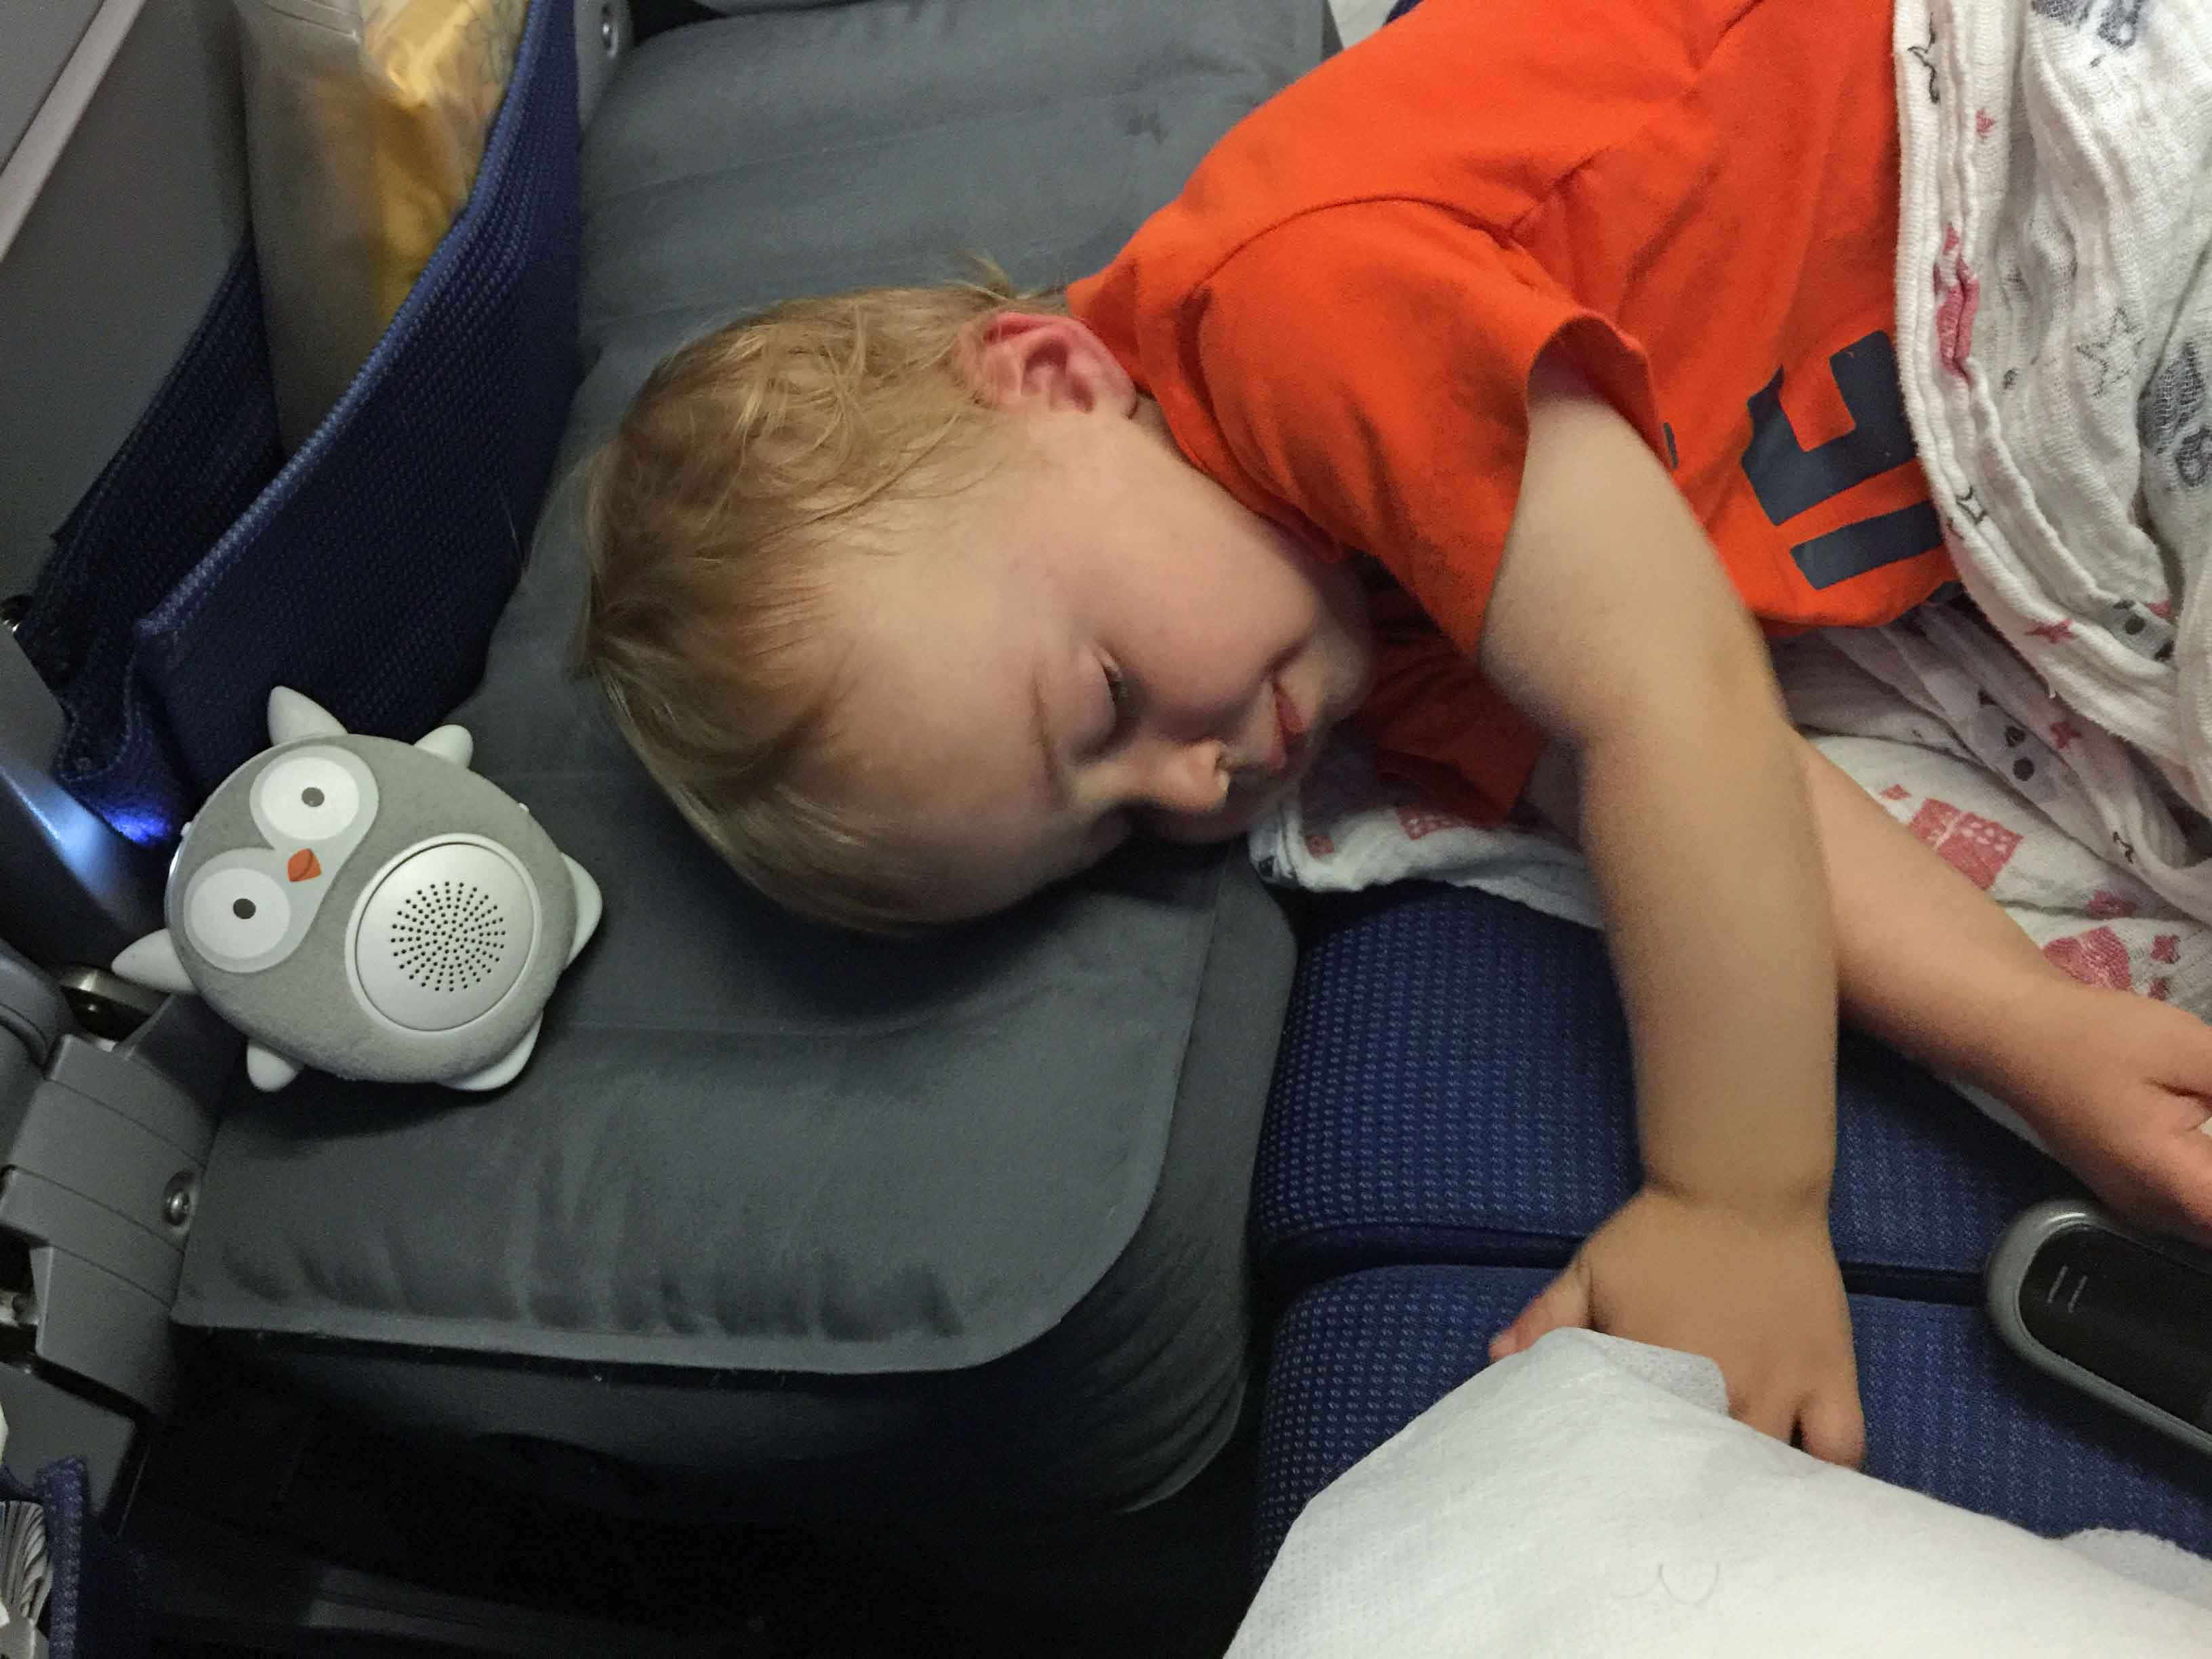 df31c7c25ac Fly Tot Inflatable Airplane Cushion Review - Baby Can Travel